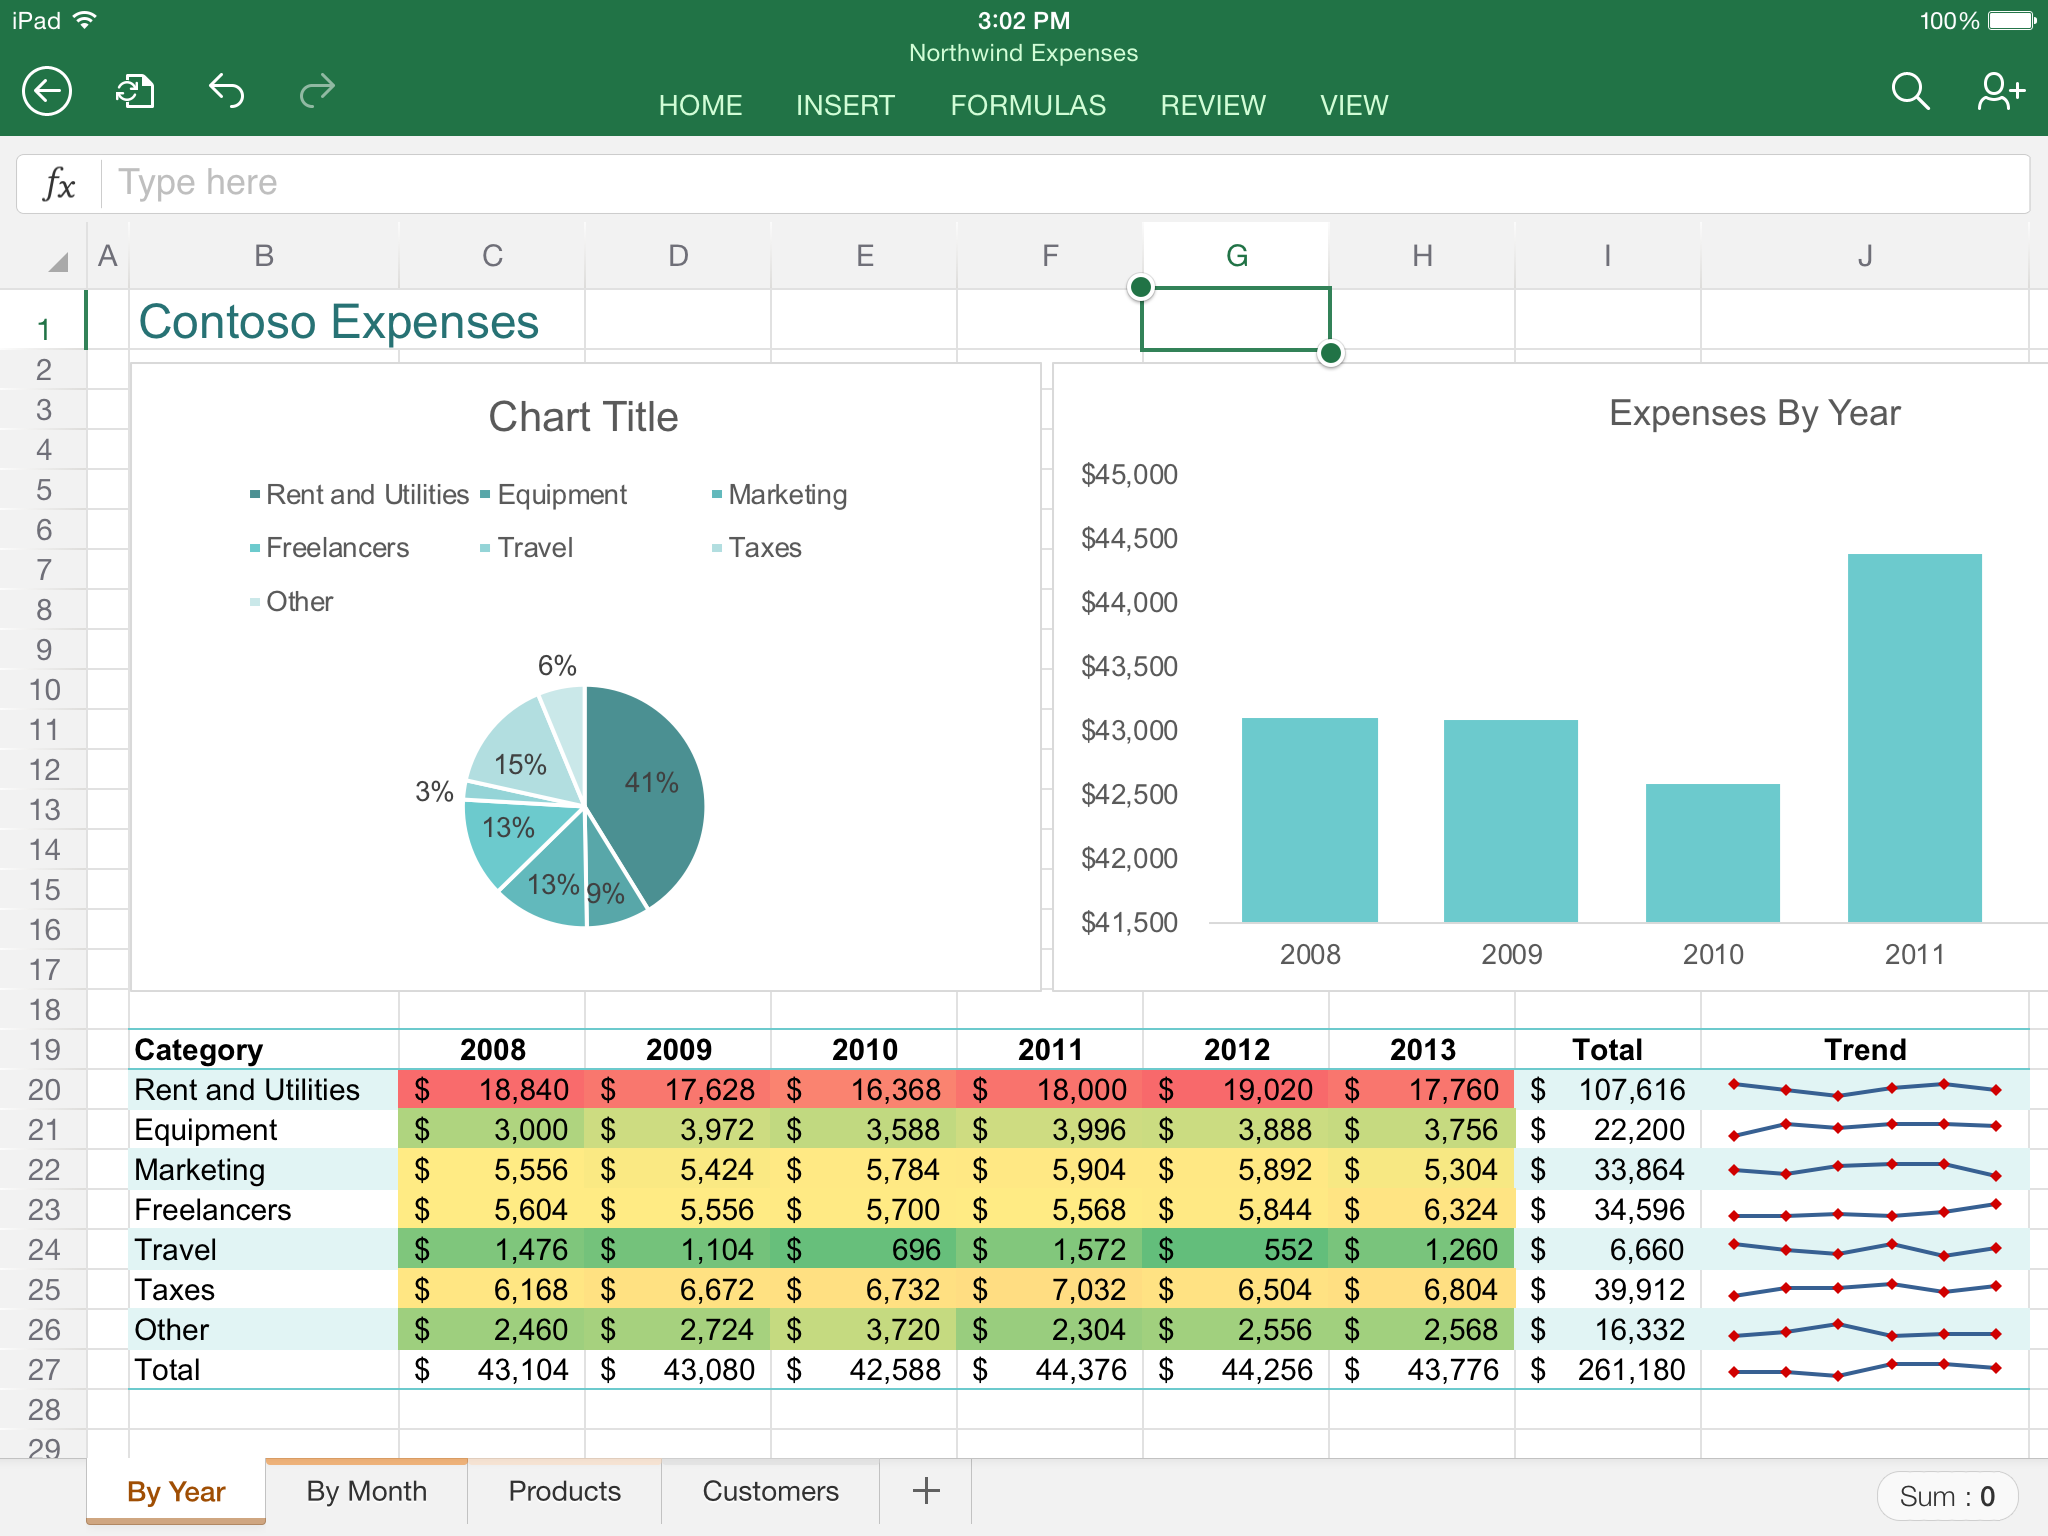 Ediblewildsus  Mesmerizing App Highlight Excel  Mobile Digital Now With Luxury Excel In Action With Beautiful Sap Interactive Excel Also Regression Tool Excel In Addition How To Freeze Excel Column And Label Mail Merge From Excel As Well As Ms Excel If Then Additionally Count Character In Excel From Youstonybrookedu With Ediblewildsus  Luxury App Highlight Excel  Mobile Digital Now With Beautiful Excel In Action And Mesmerizing Sap Interactive Excel Also Regression Tool Excel In Addition How To Freeze Excel Column From Youstonybrookedu